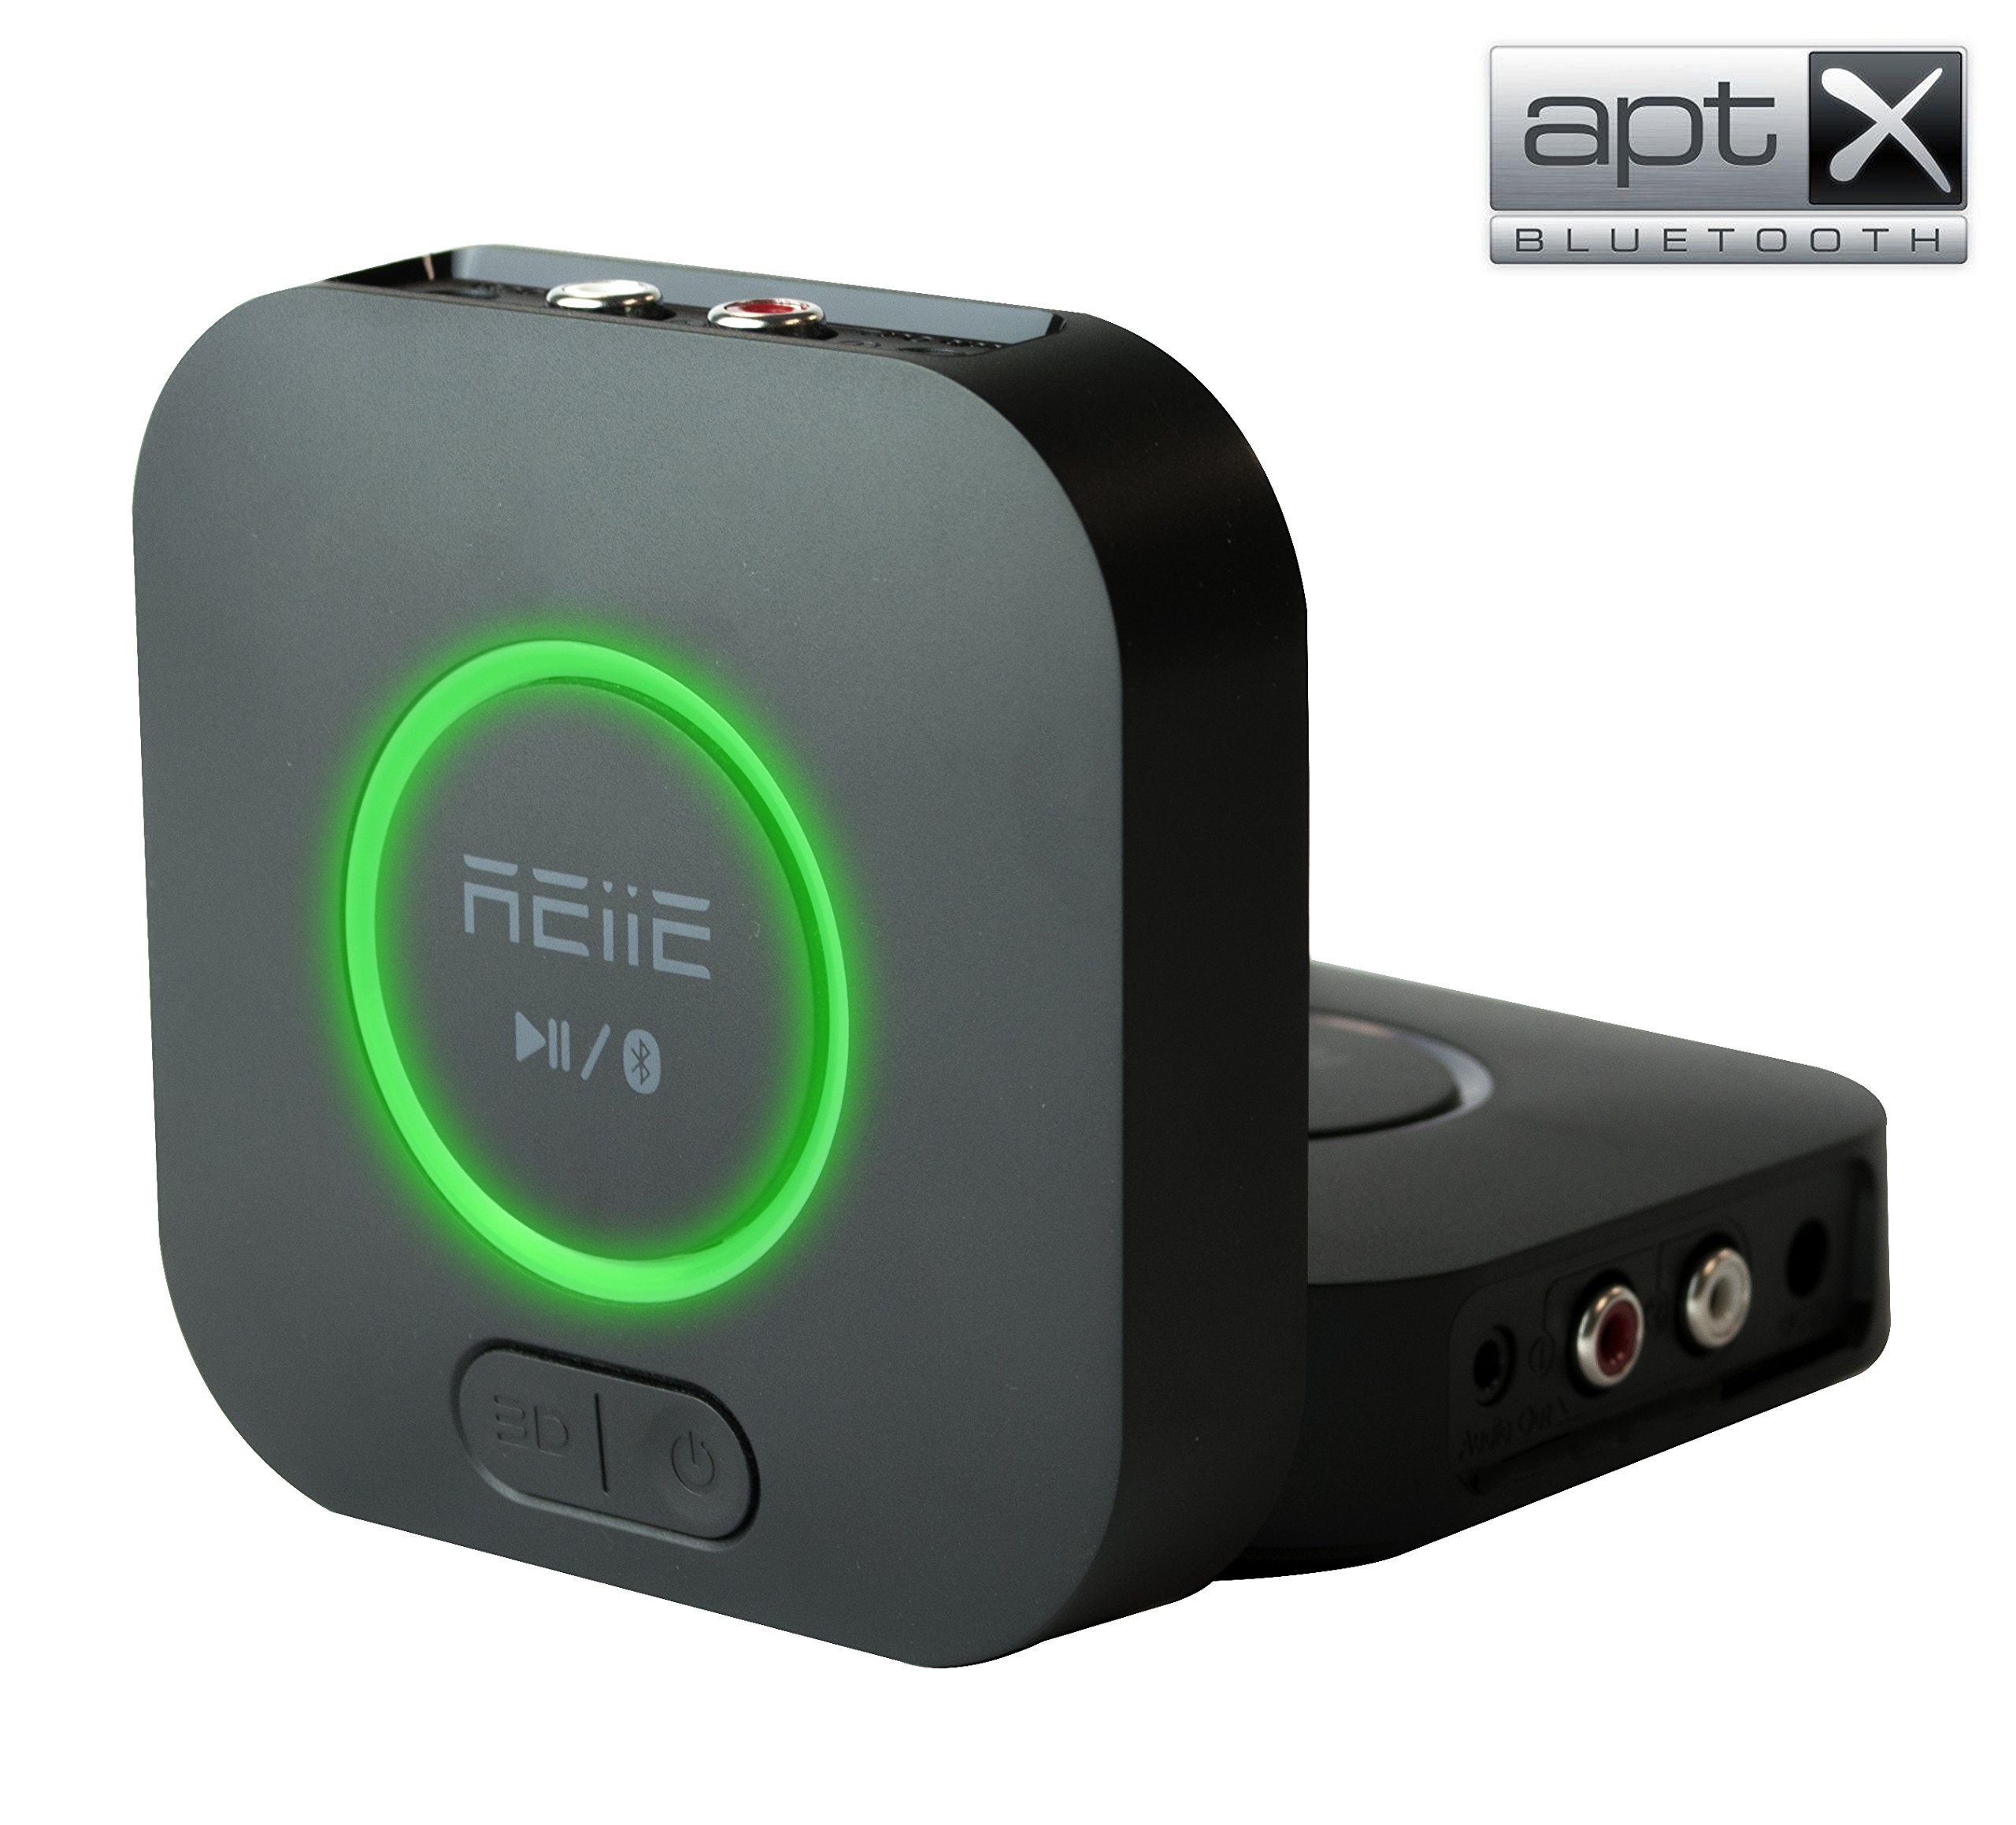 REiiE Audio Bluetooth Adapter Receiver with 3D Surround AptX Low Latency, V4.2 Wireless Audio Adapter for Home and Car Music Stereo Streaming(Pair 2 At Once) by REIIE (Image #1)